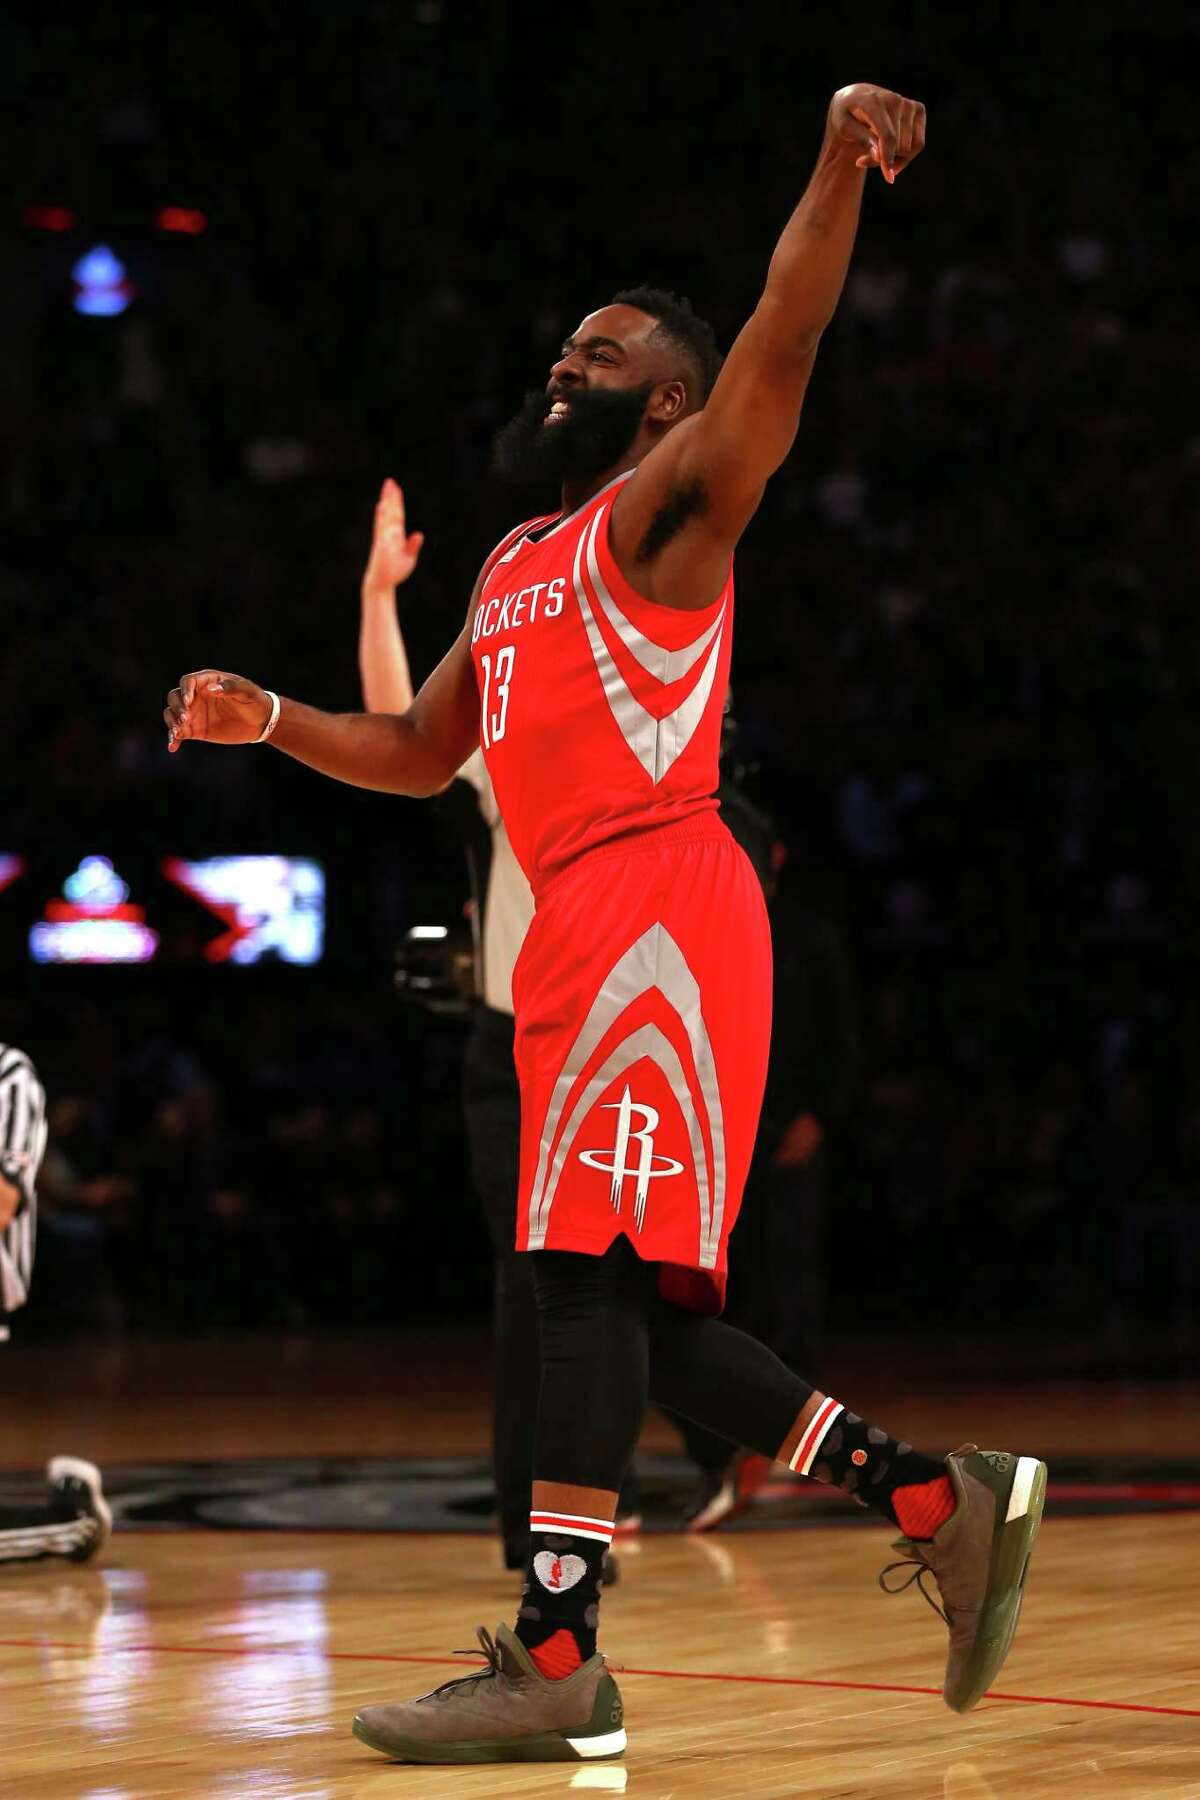 TORONTO, ON - FEBRUARY 13: James Harden of the Houston Rockets shoots in the Foot Locker Three-Point Contest during NBA All-Star Weekend 2016 at Air Canada Centre on February 13, 2016 in Toronto, Canada. NOTE TO USER: User expressly acknowledges and agrees that, by downloading and/or using this Photograph, user is consenting to the terms and conditions of the Getty Images License Agreement.